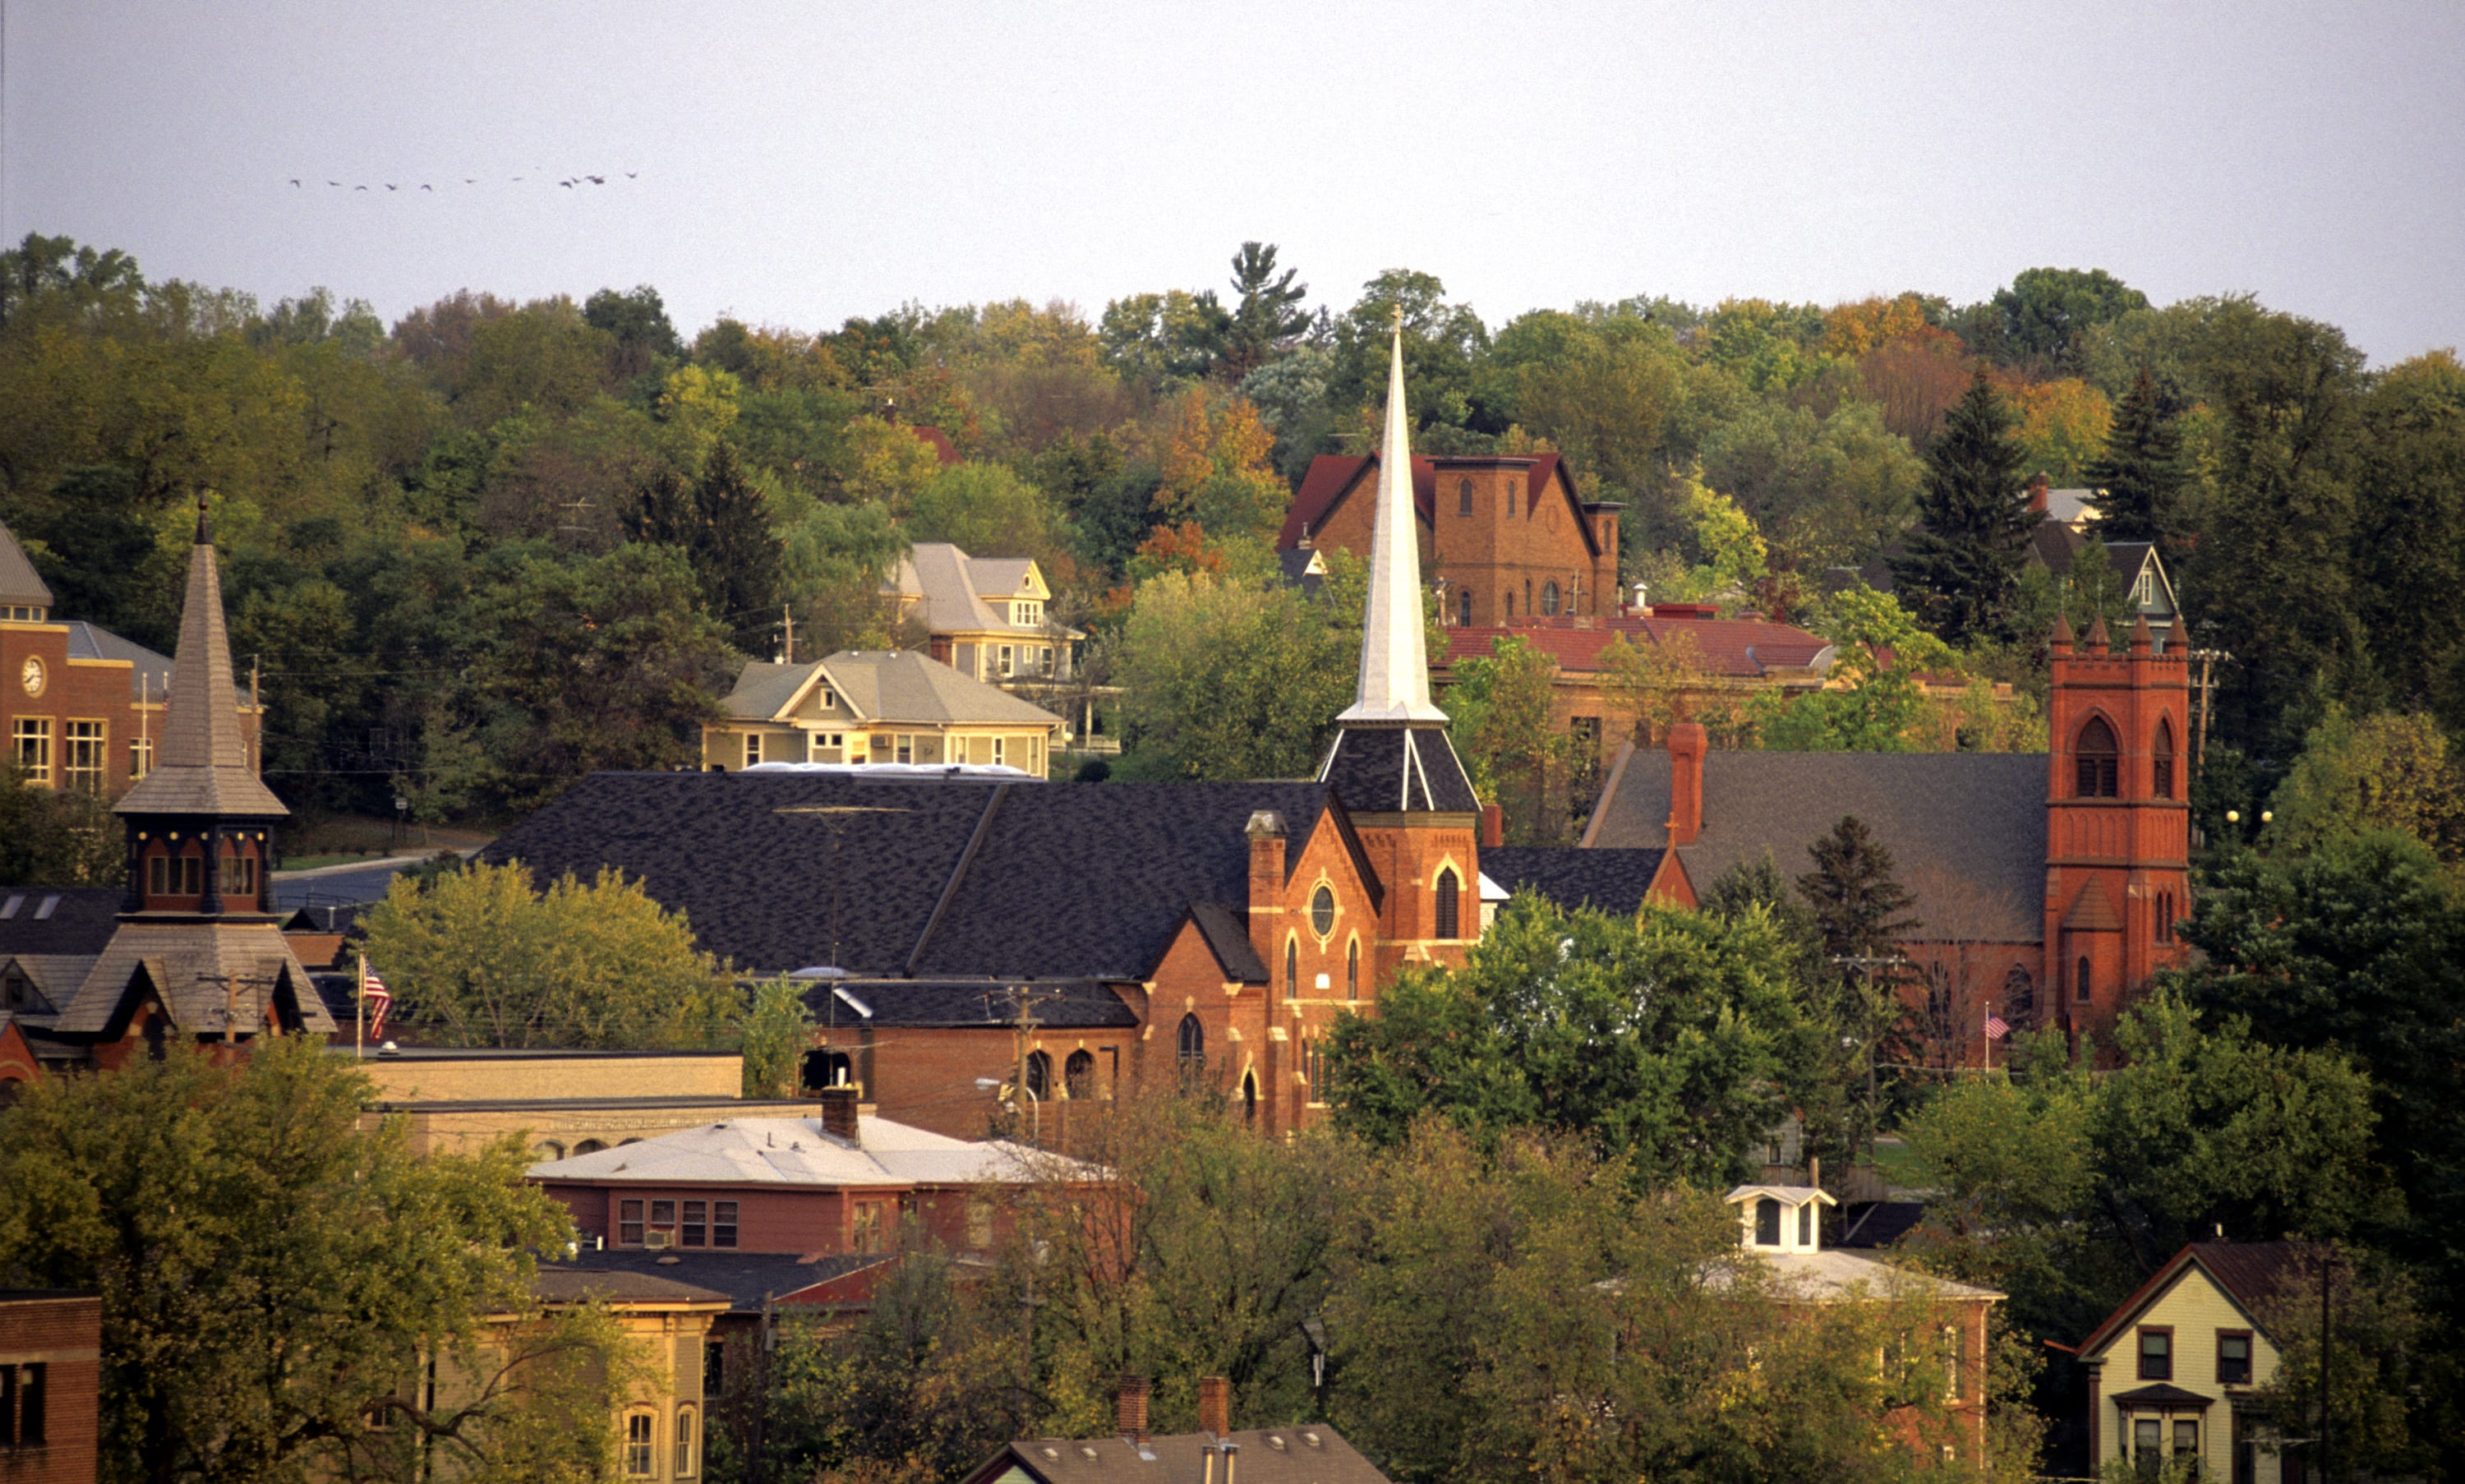 Church steeples and other buildings in the Stillwater skyline.